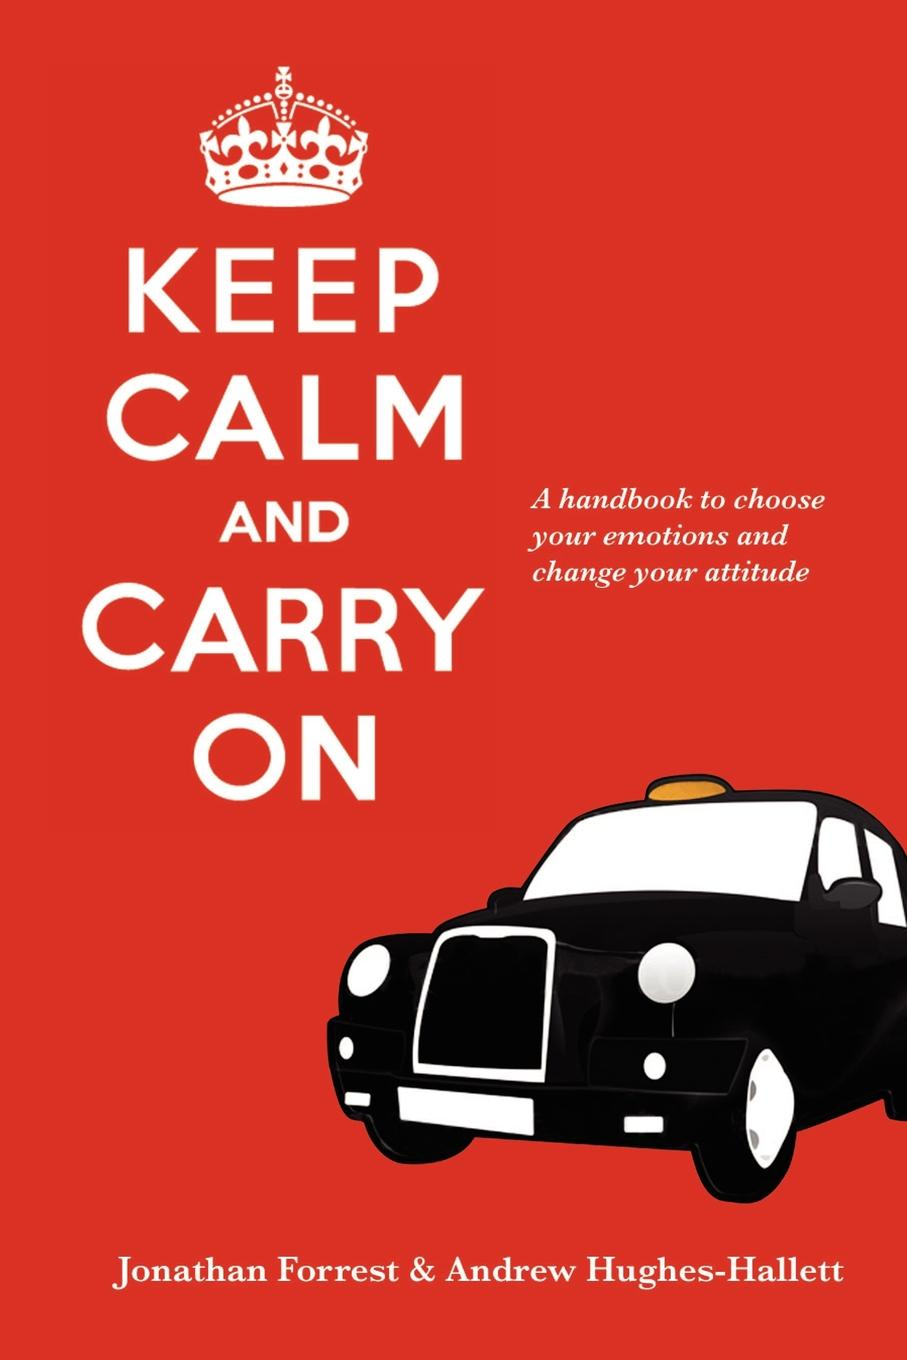 Jonathan Forrest, Andrew Hughes-Hallett Keep Calm and Carry On - A handbook to choose your emotions and change your attitude